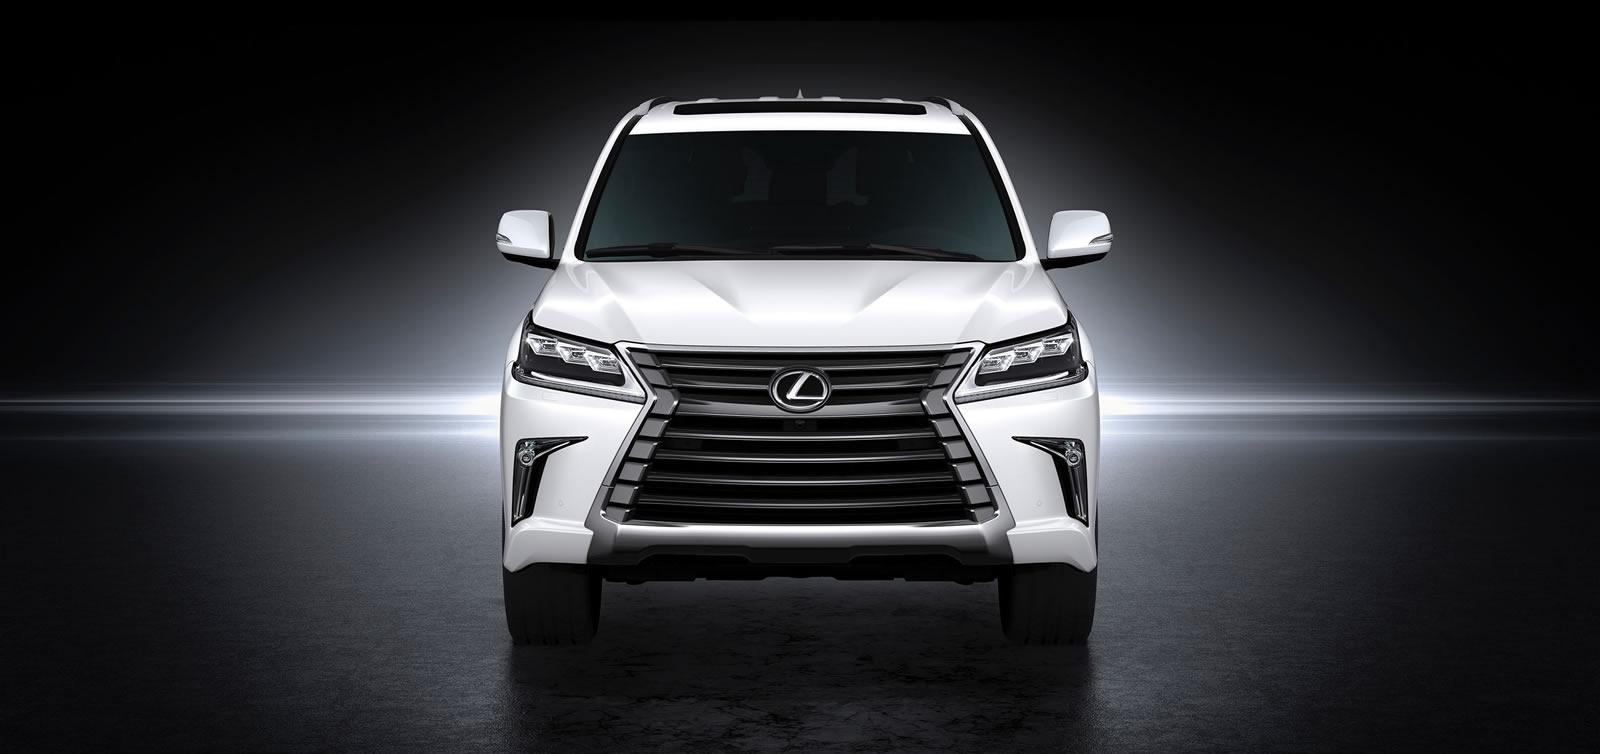 2019 Lexus LX 570 photo - 1